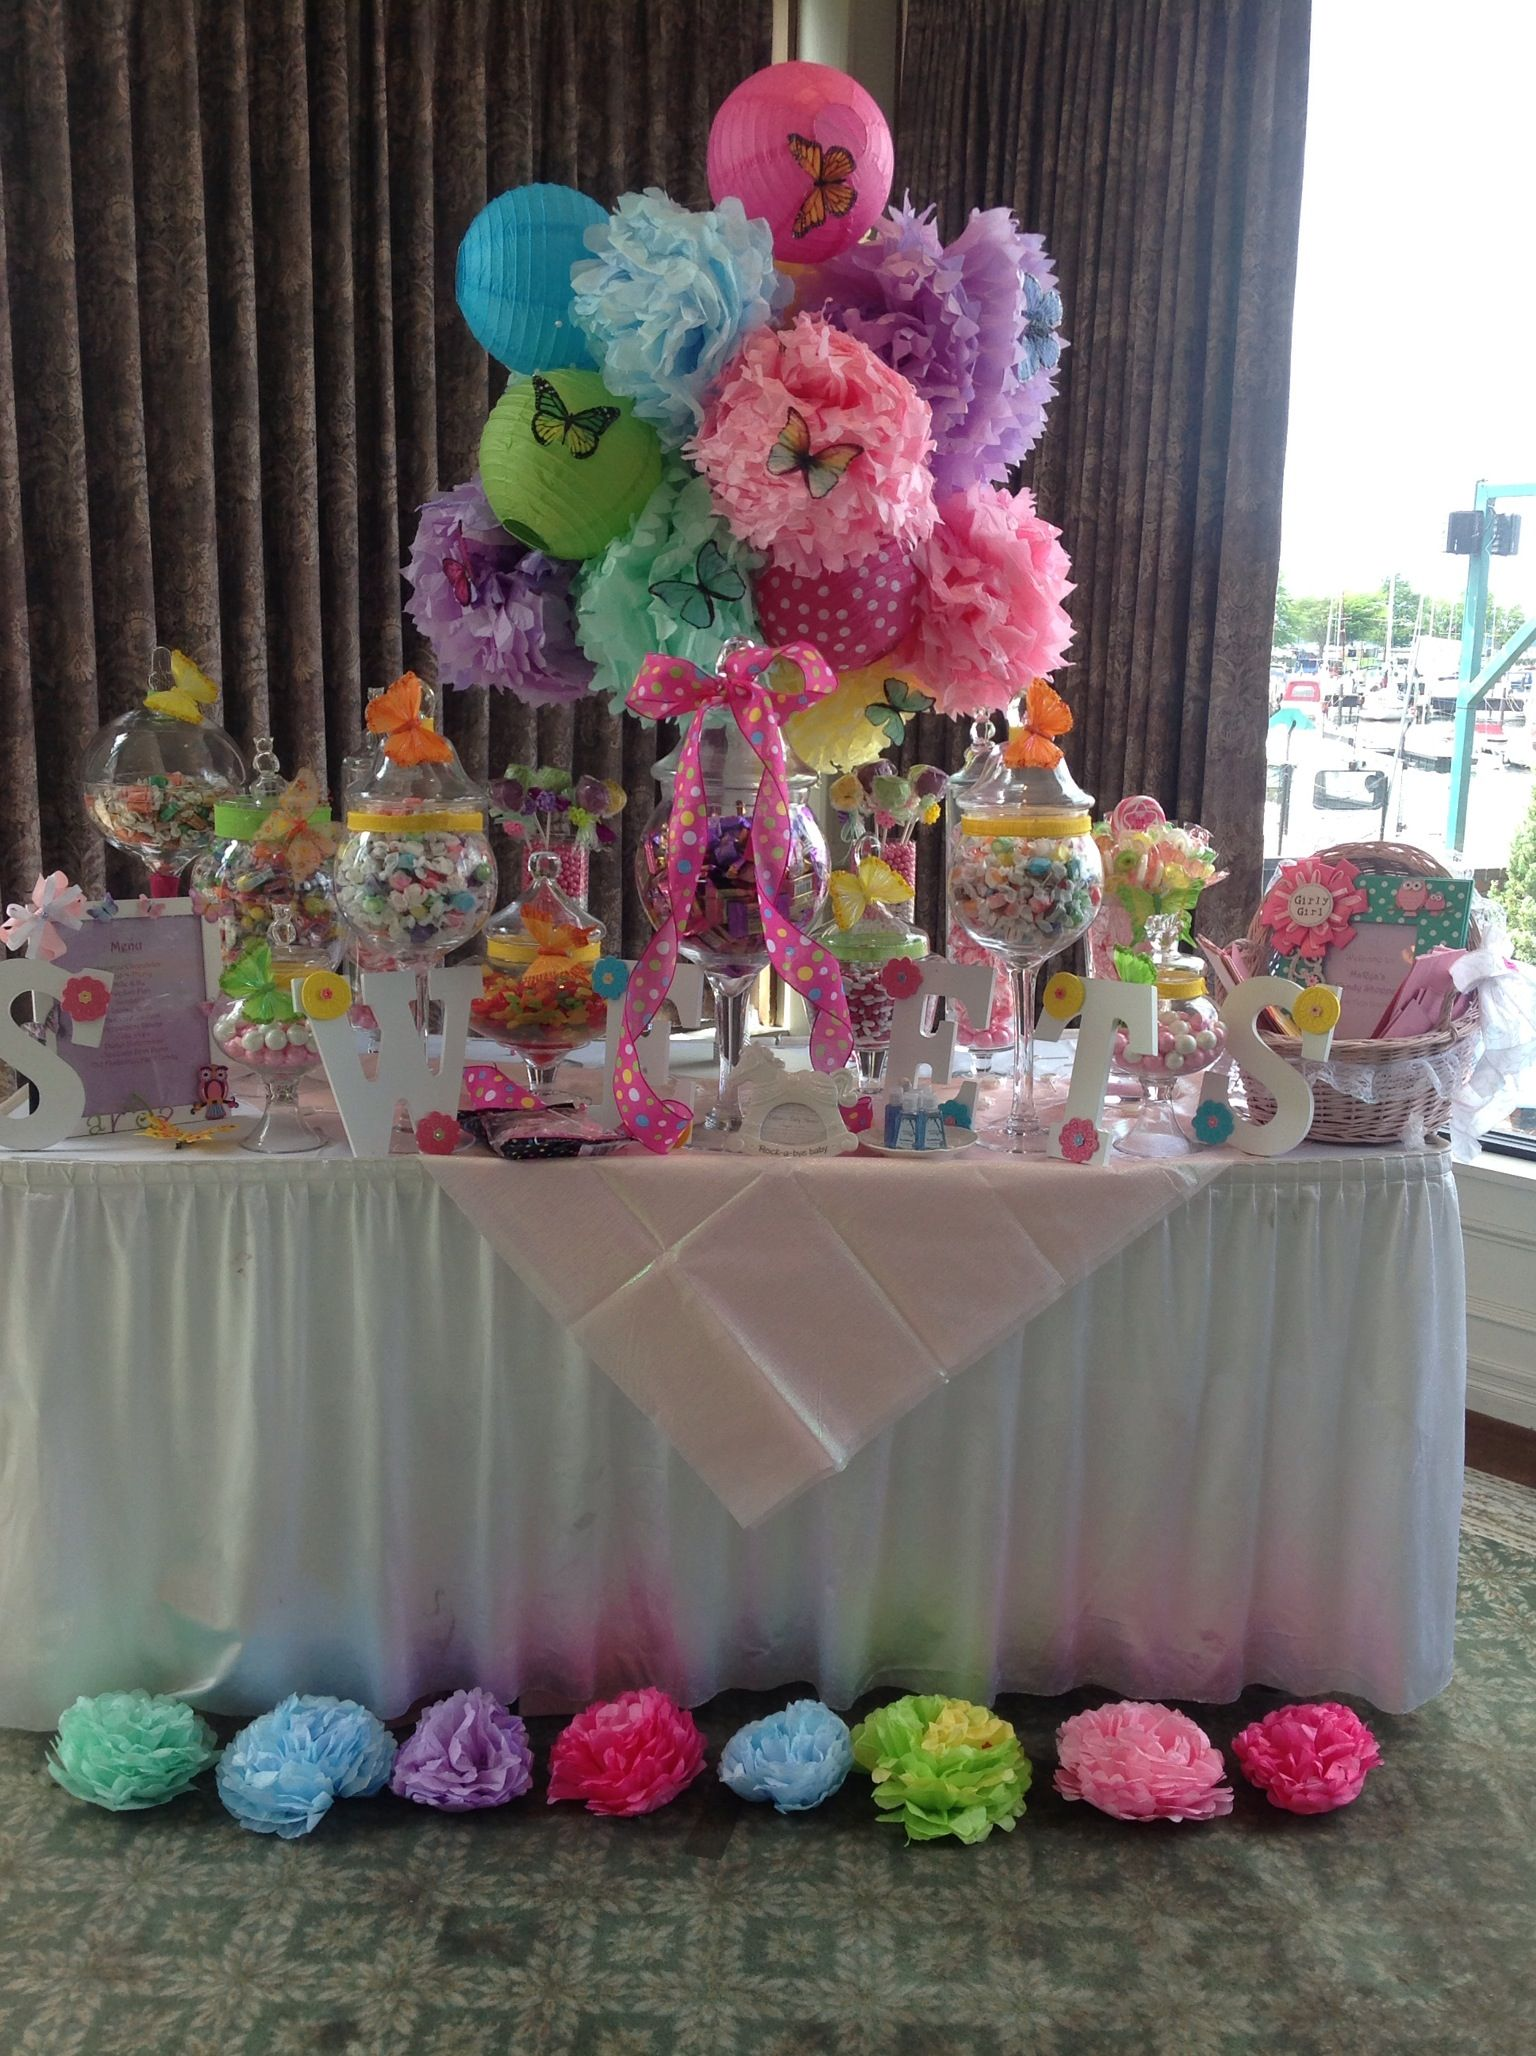 Diy table decorations for baby shower - Whimsical Owl Themed Baby Shower Candy Station Highlighted With Paper Lanterns And Diy Tissue Paper